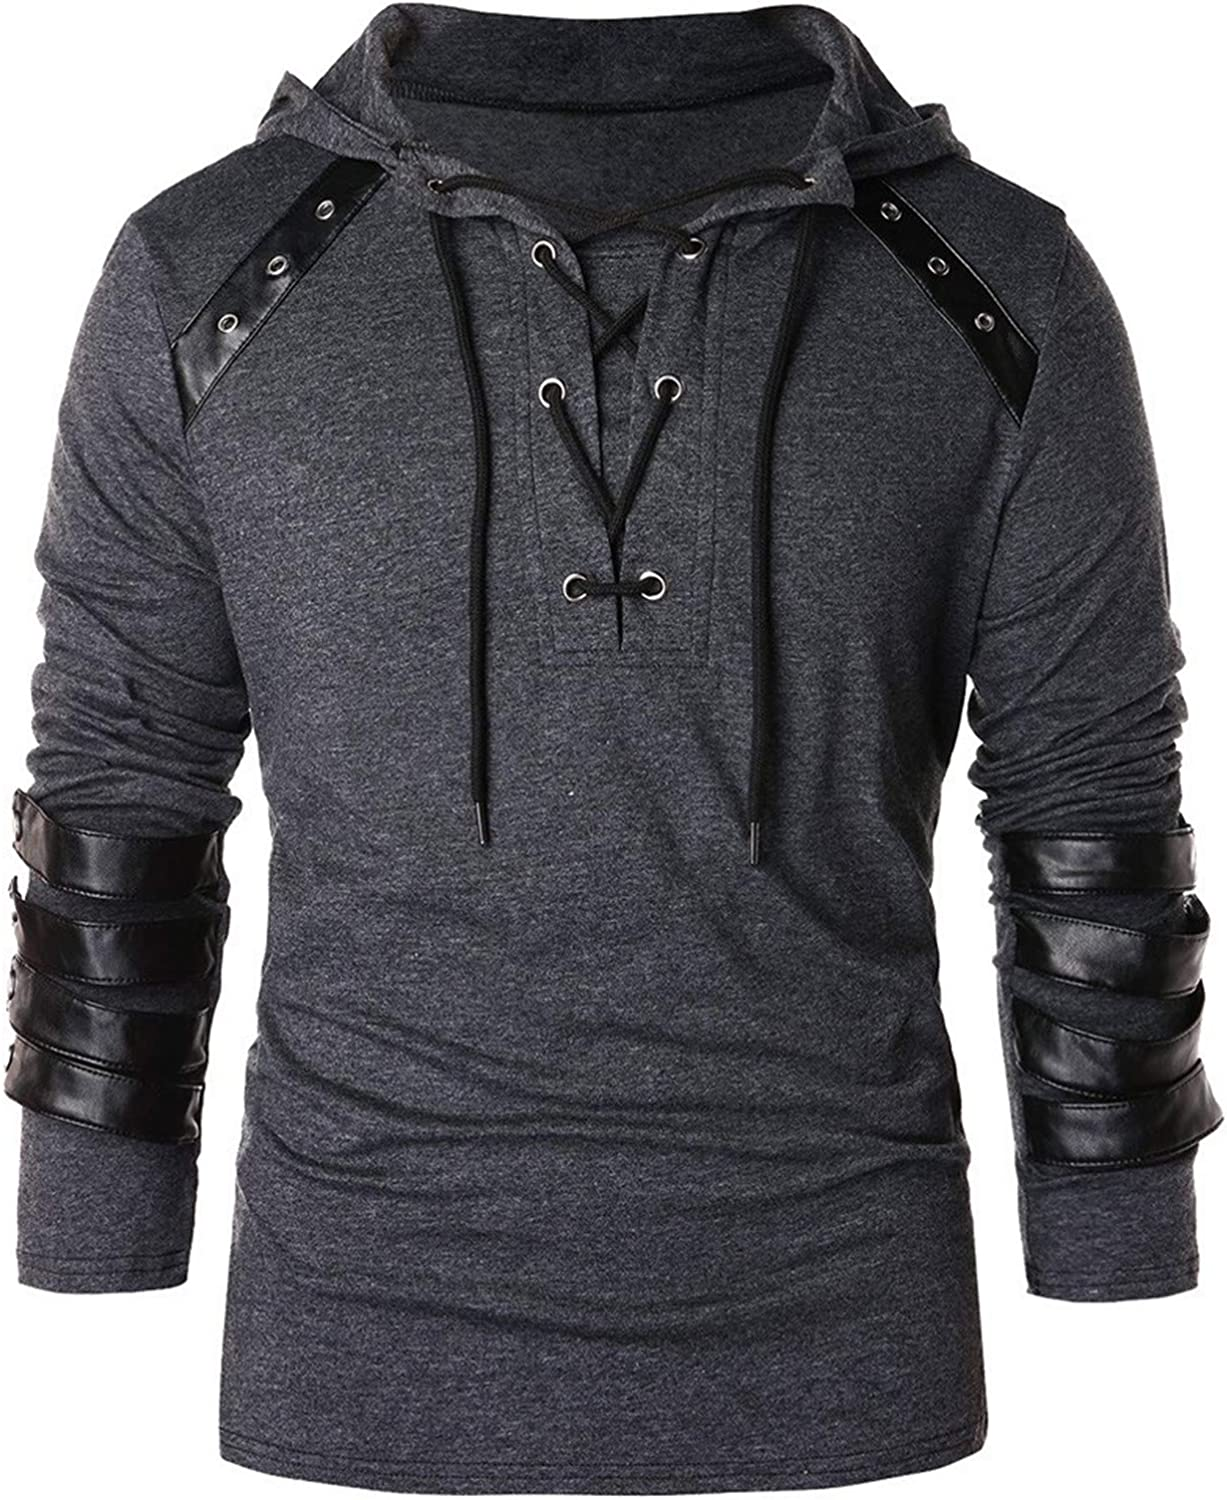 Men's Lightweight Lace Up V Neck Long Sleeve Blouse Tops Punk Hooded T-Shirt Vintage Leather Patchwork Tees